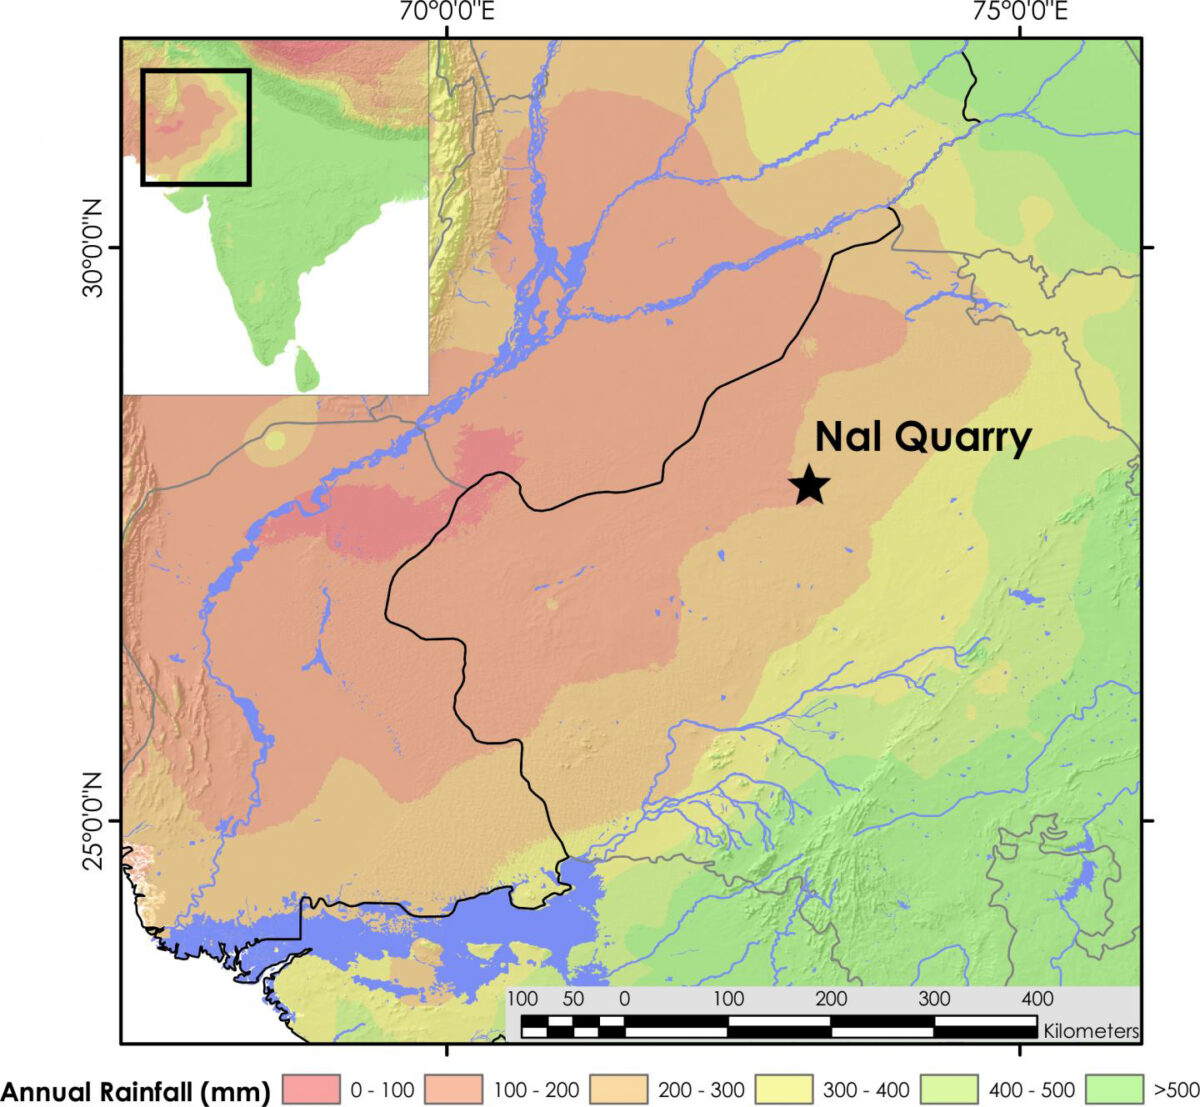 Map showing the location of Nal Quarry at the threshold of the Asian monsoon, and ~200km away from modern rivers in the Thar Desert. Credit: J. Blinkhorn